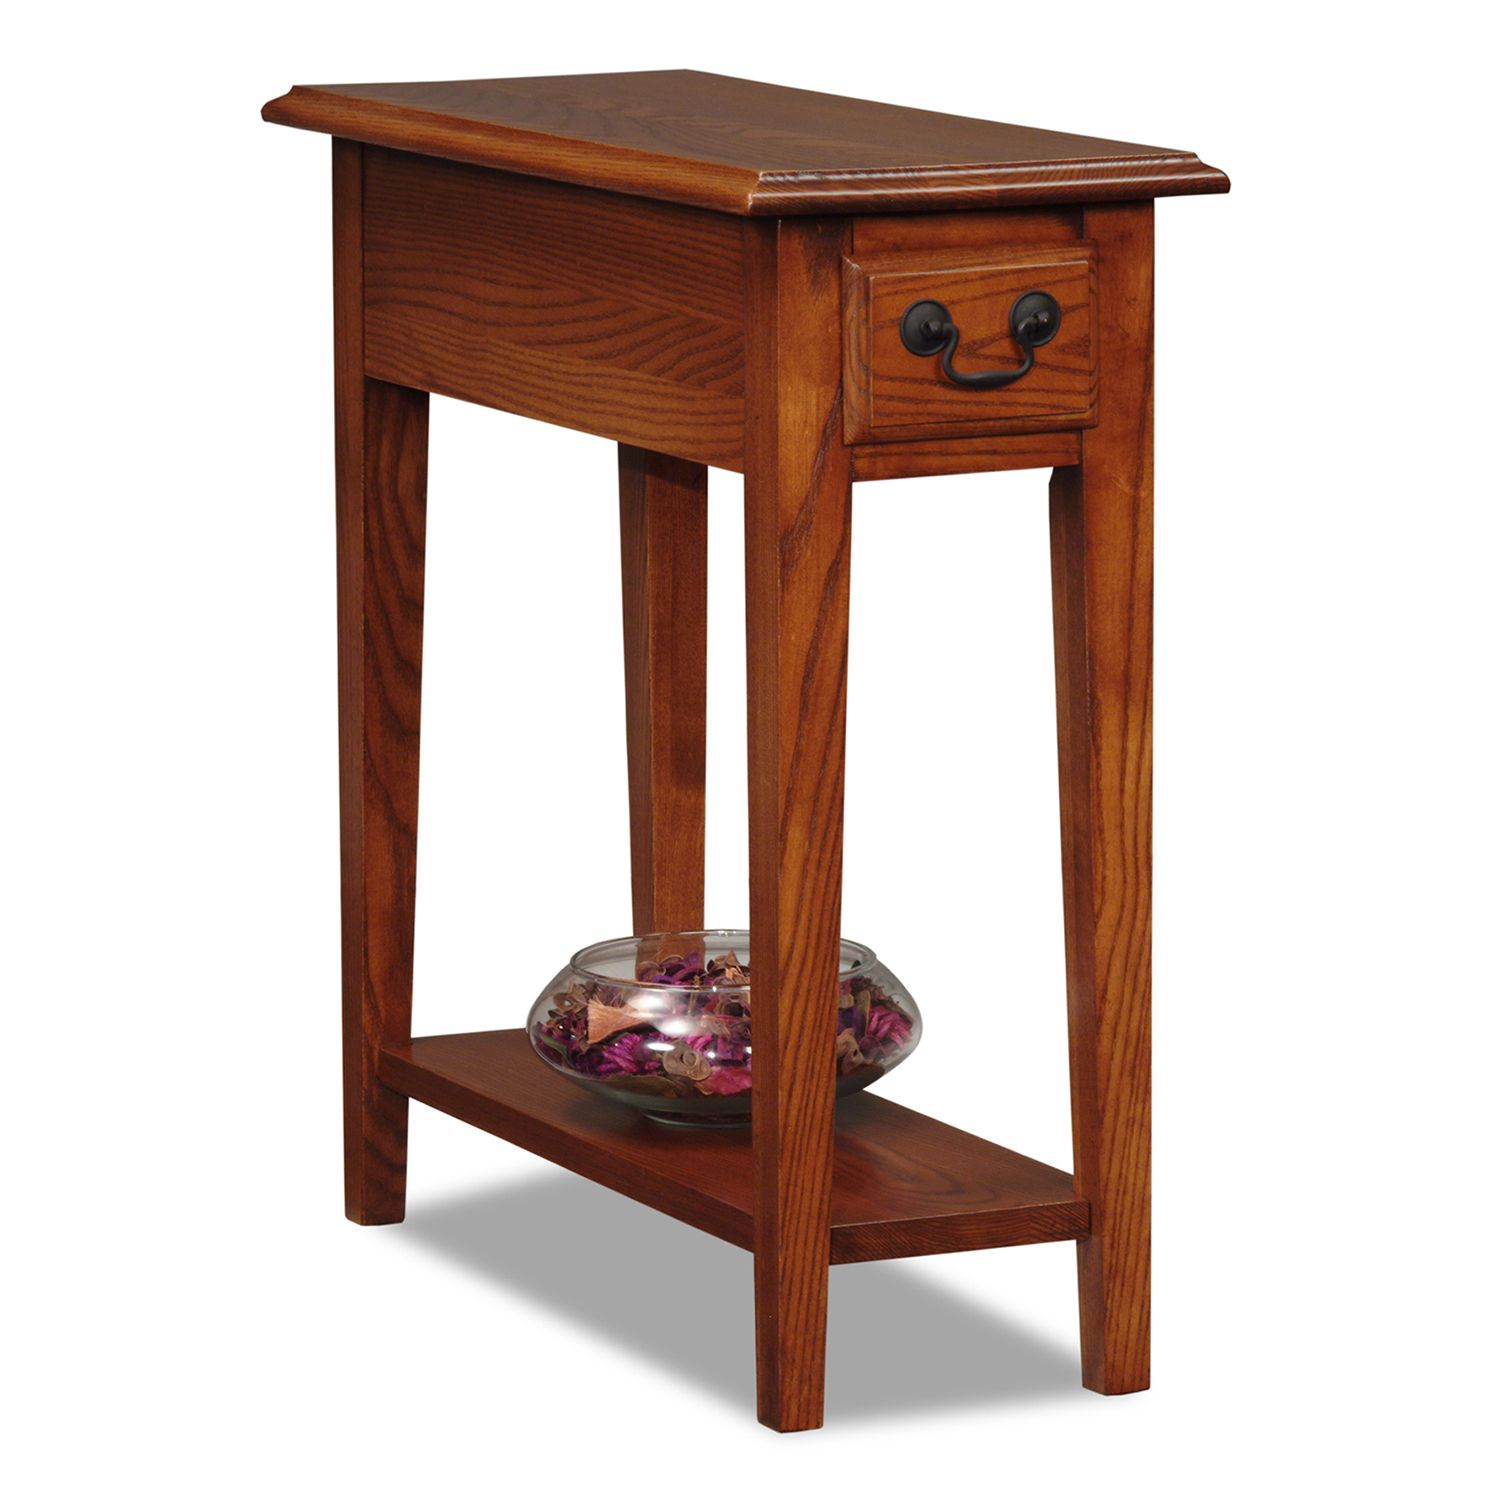 Ordinaire Leick Furniture End Table